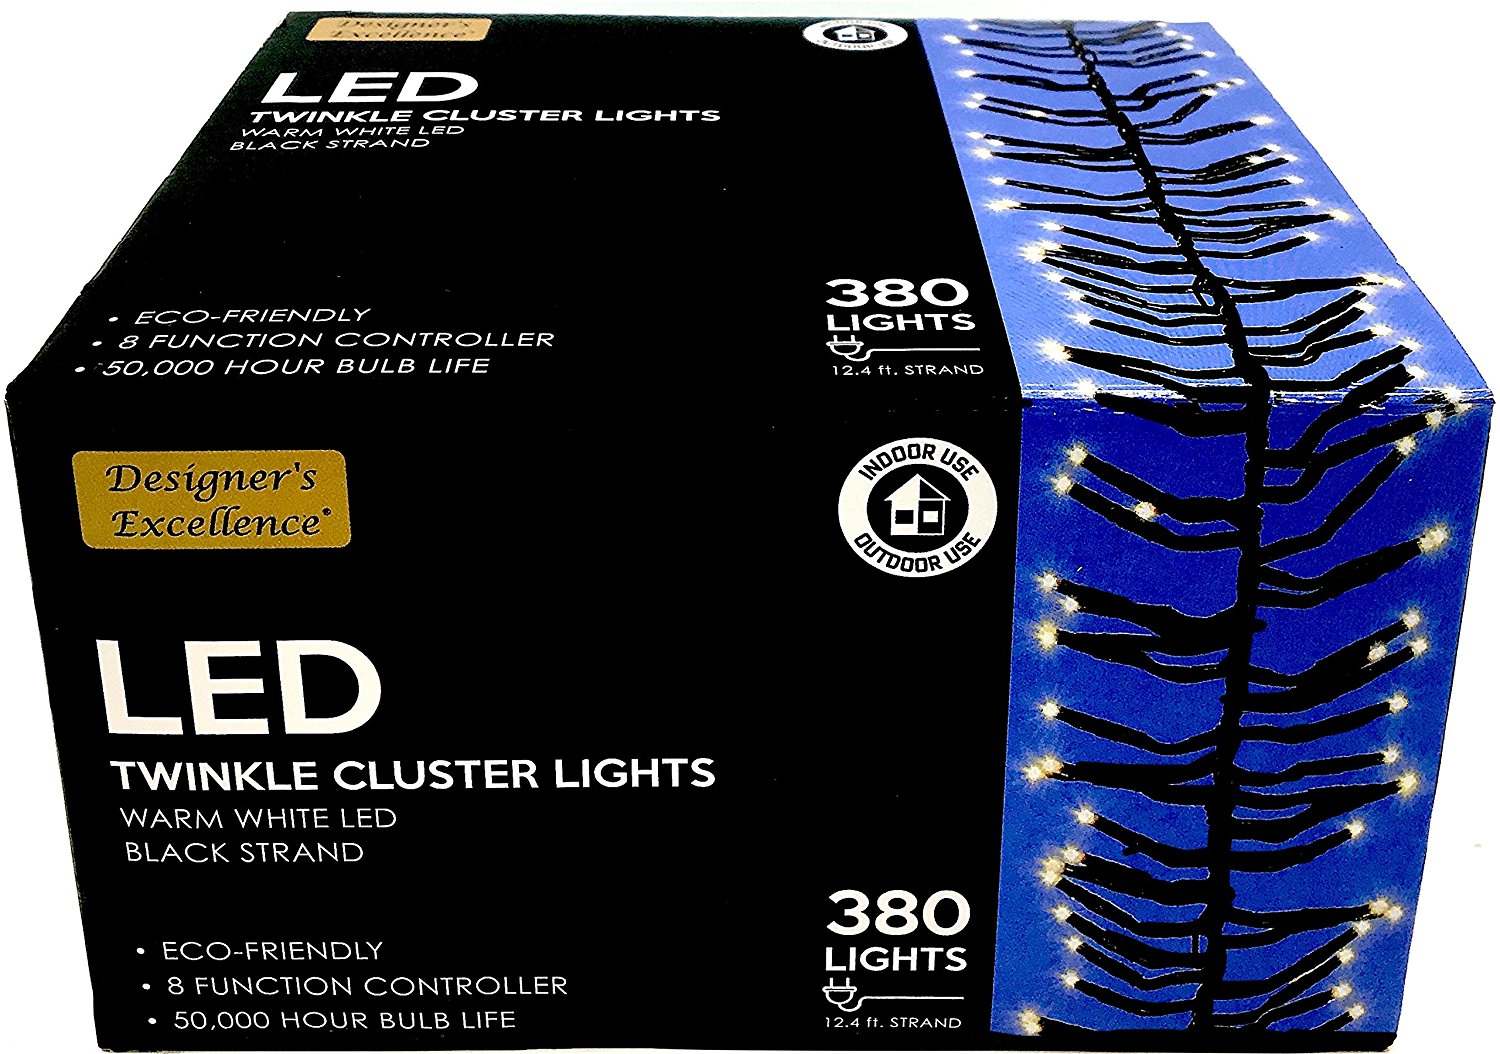 NEW! 12' Decorative Twinkle Cluster Lights, Warm White LED Bulbs with 50,000 Hour Life!! 8 Lighting Mood Scenes with a Click (Twinkle, Flash, Steady, Waves, Fade, More), Indoor/Outdoor, Year-Round Use